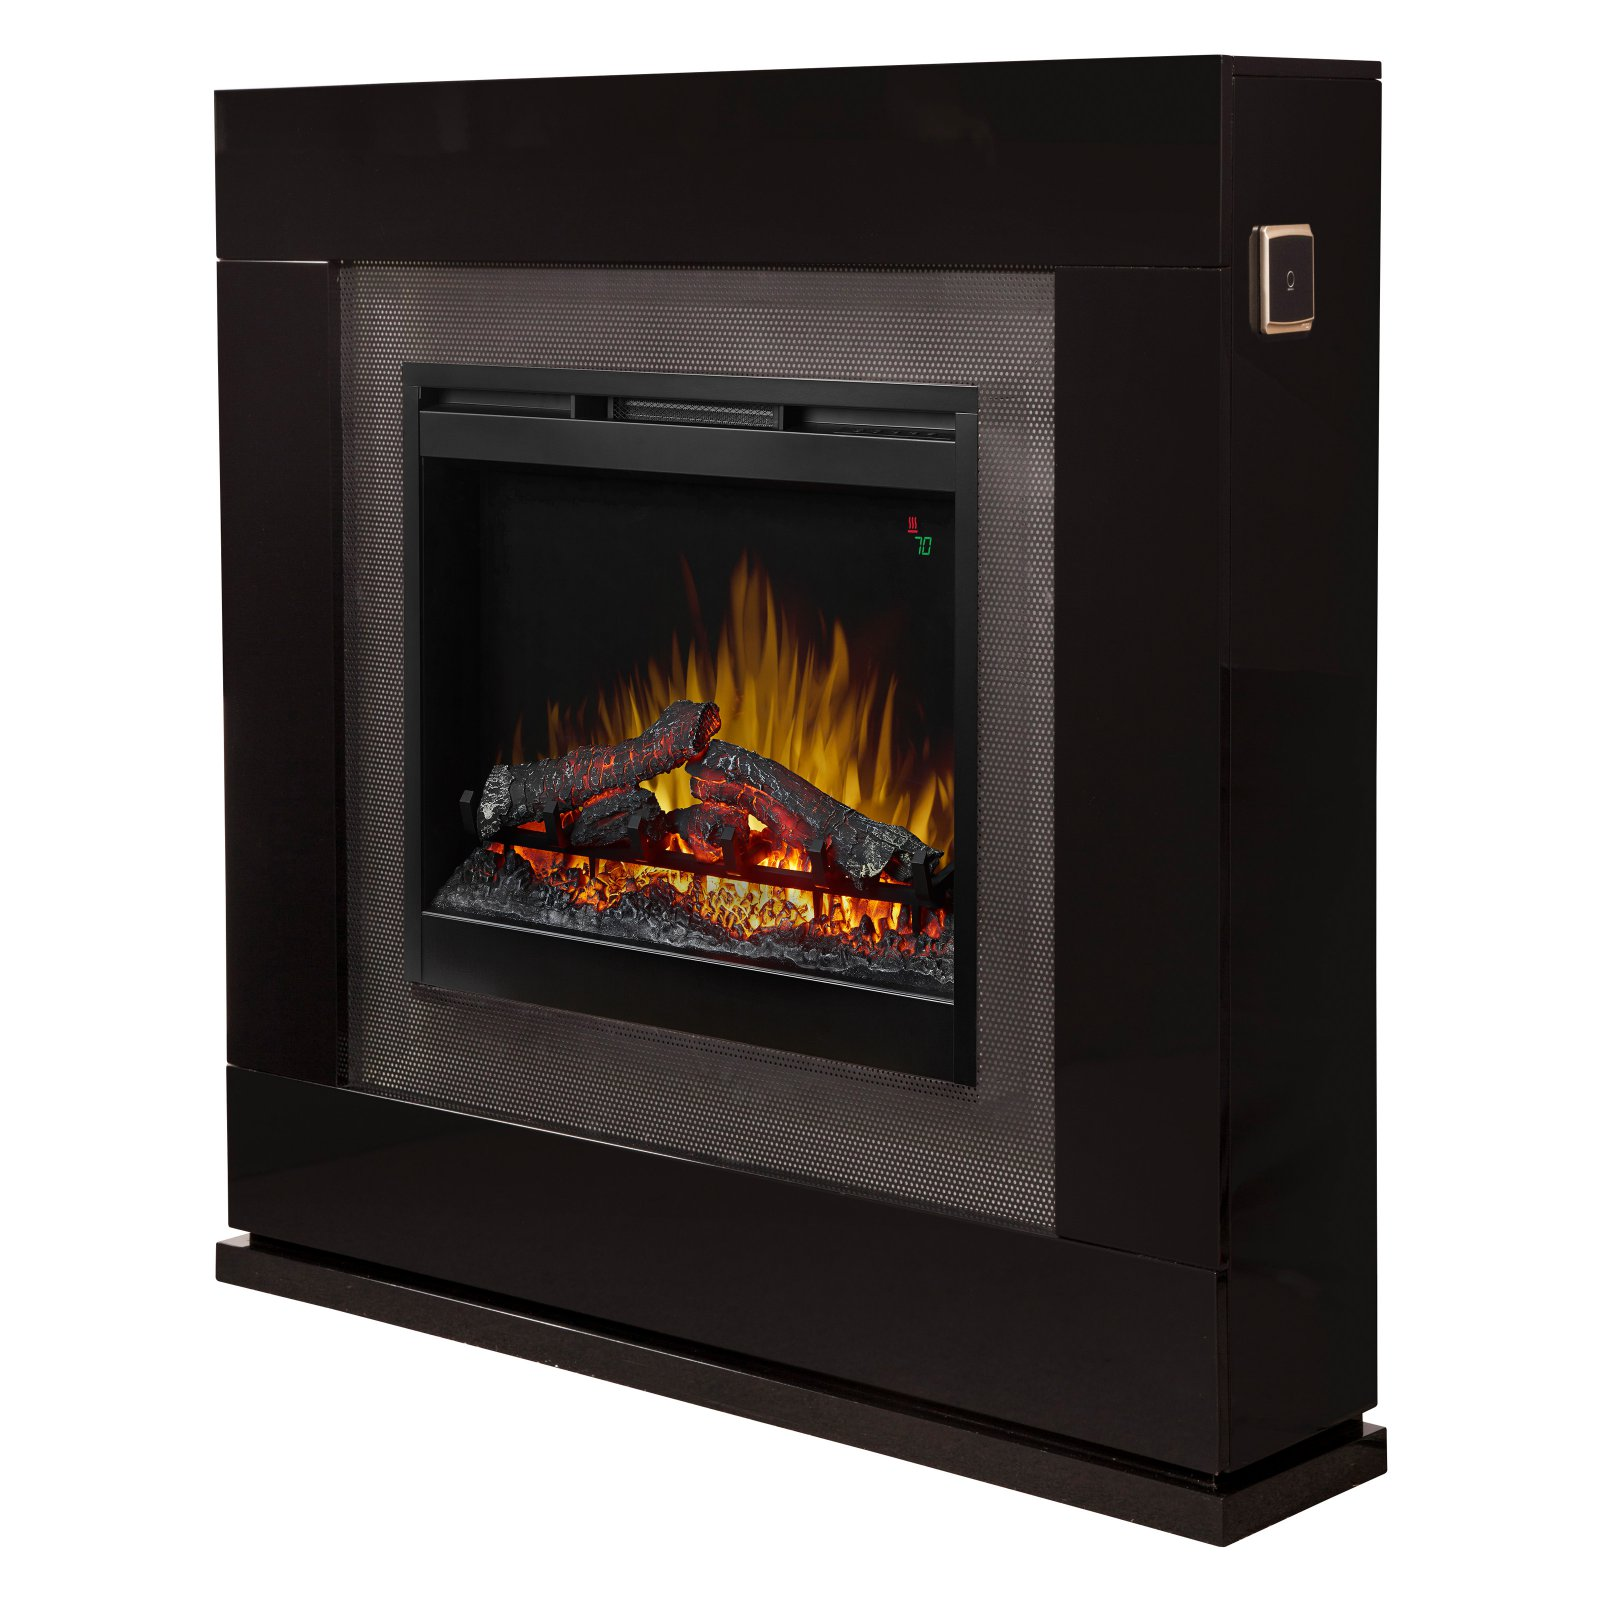 Dimplex Lukas 26 in. Electric Fireplace